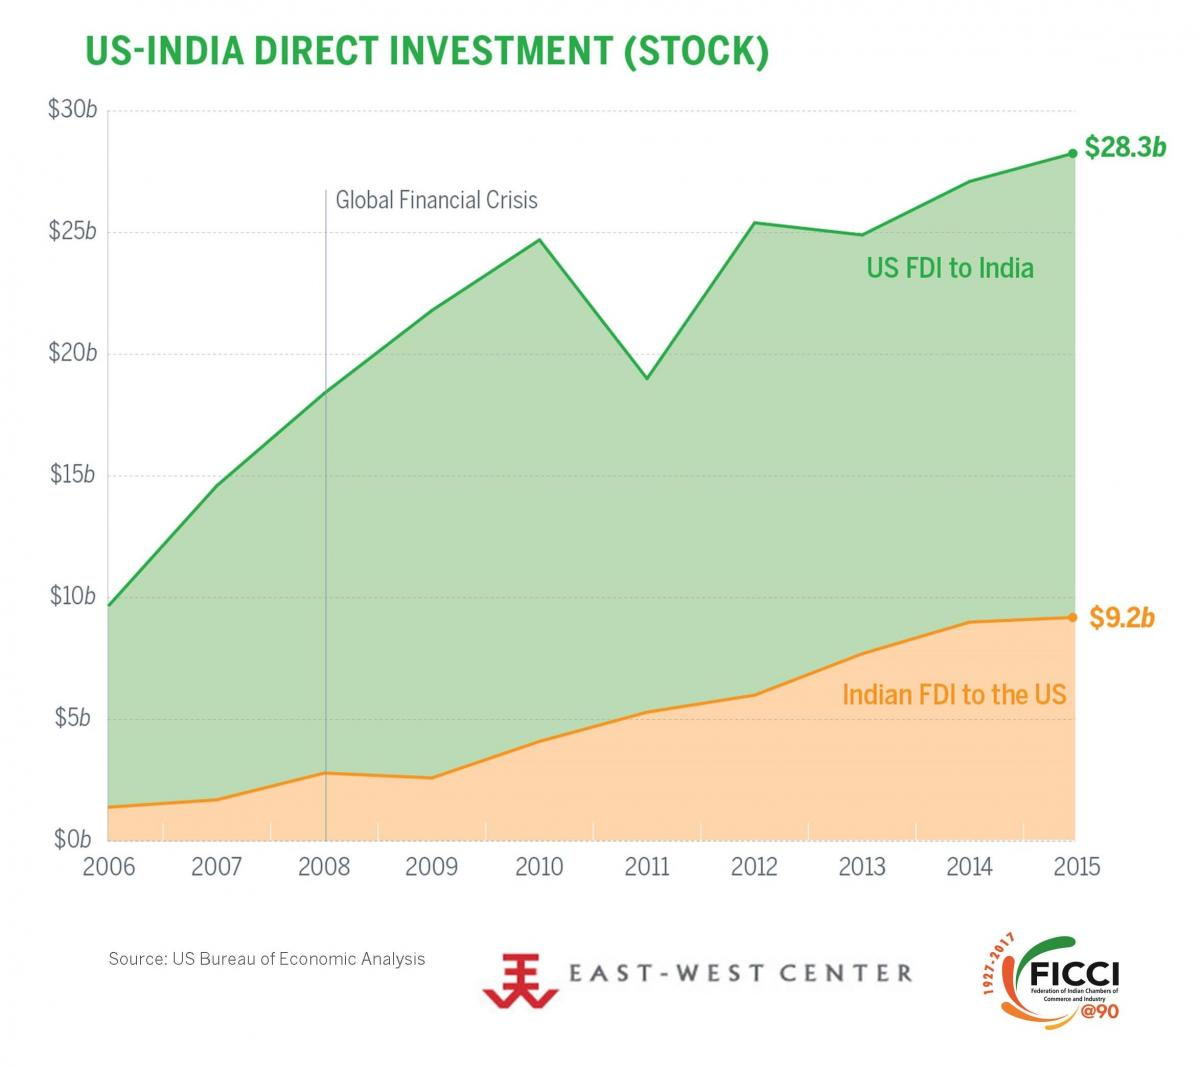 US-India Direct Investment. 2015